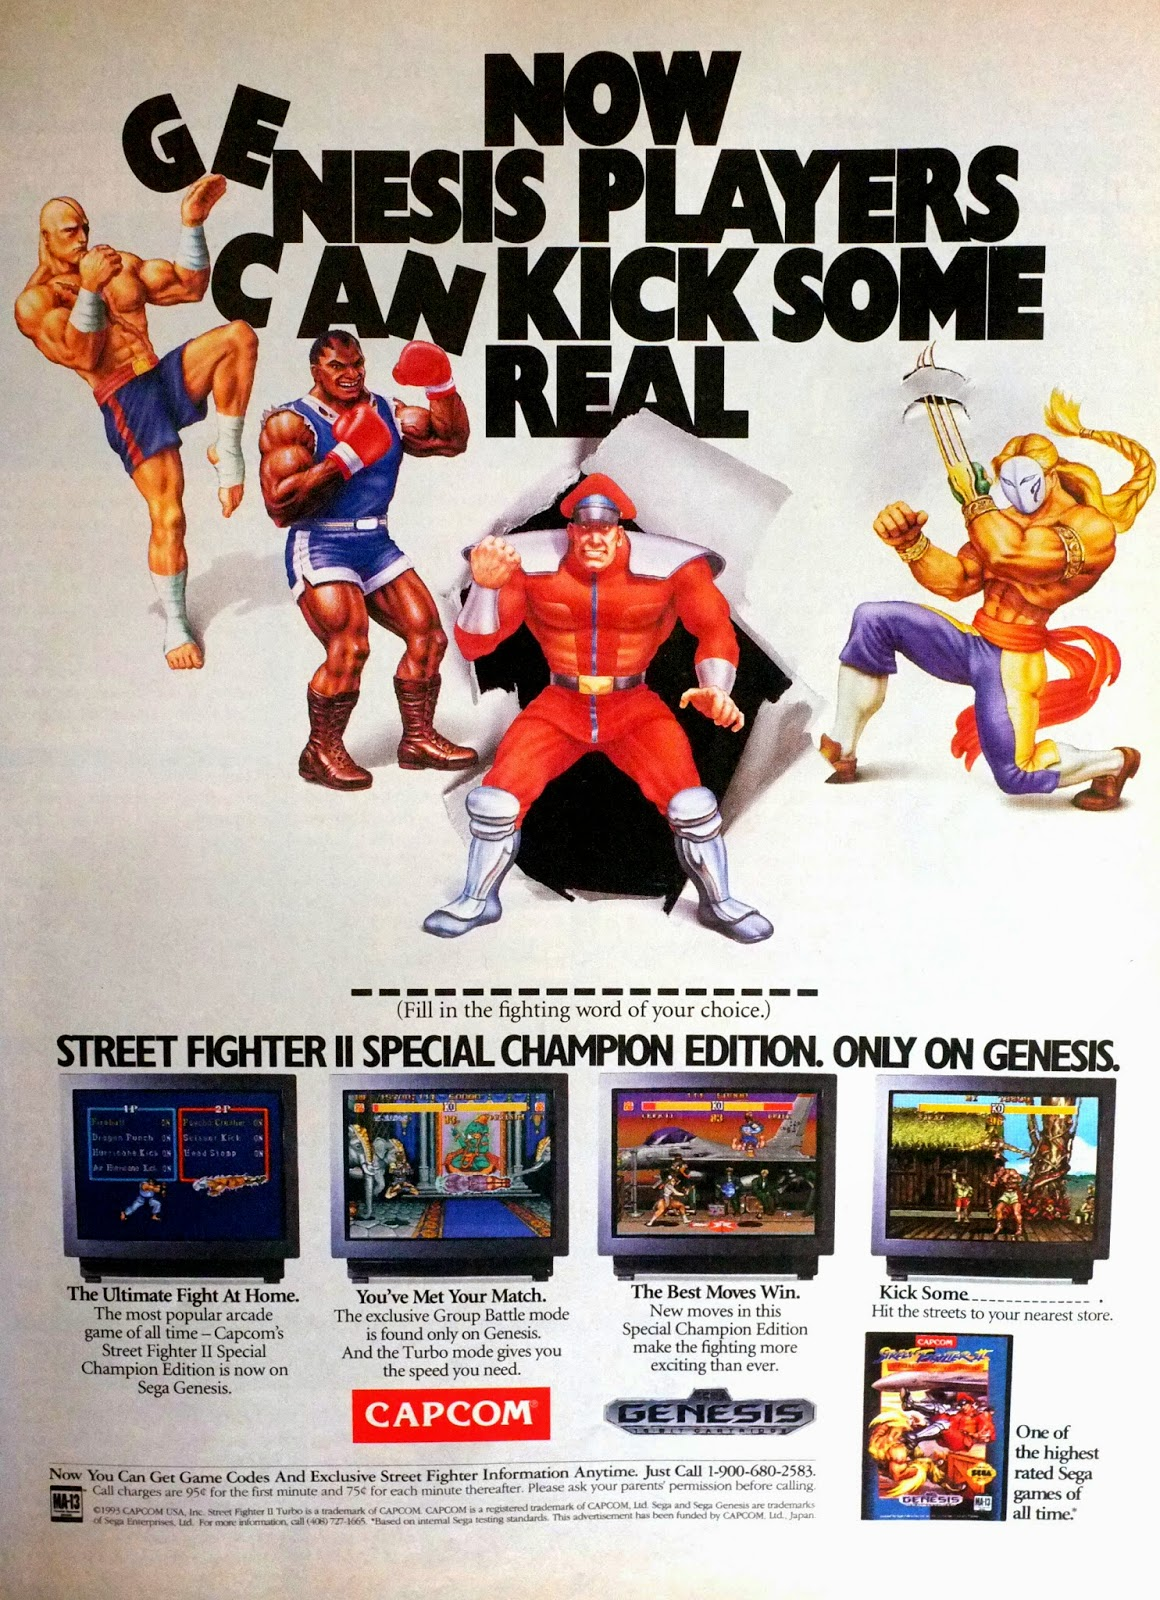 Street Fighter II Special Champion Edition for Genesis advertisement